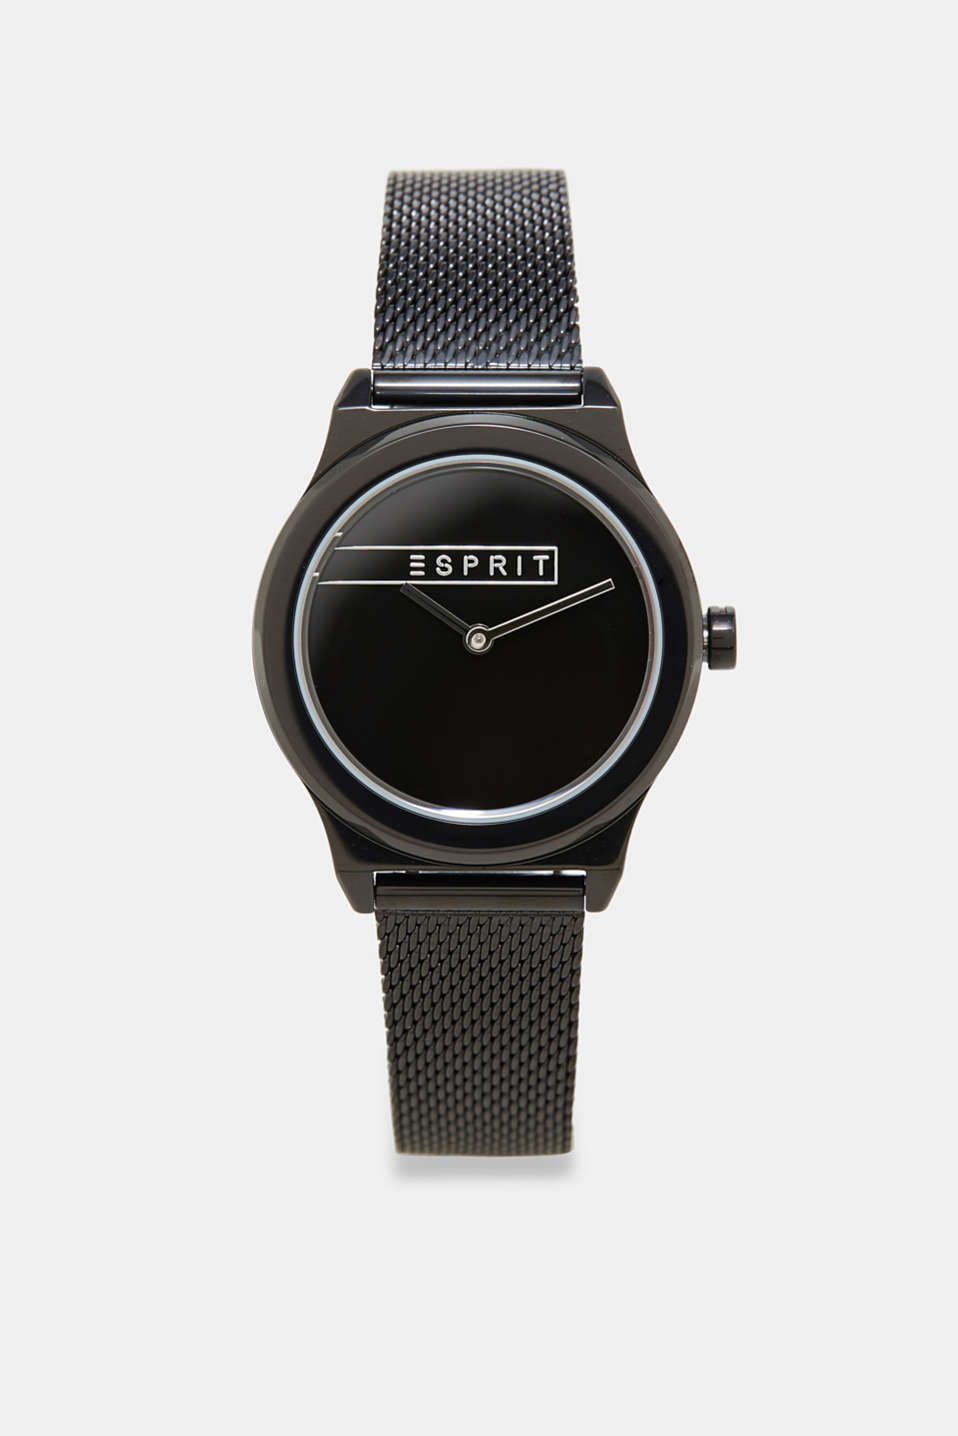 Esprit - Black plated watch in stainless steel